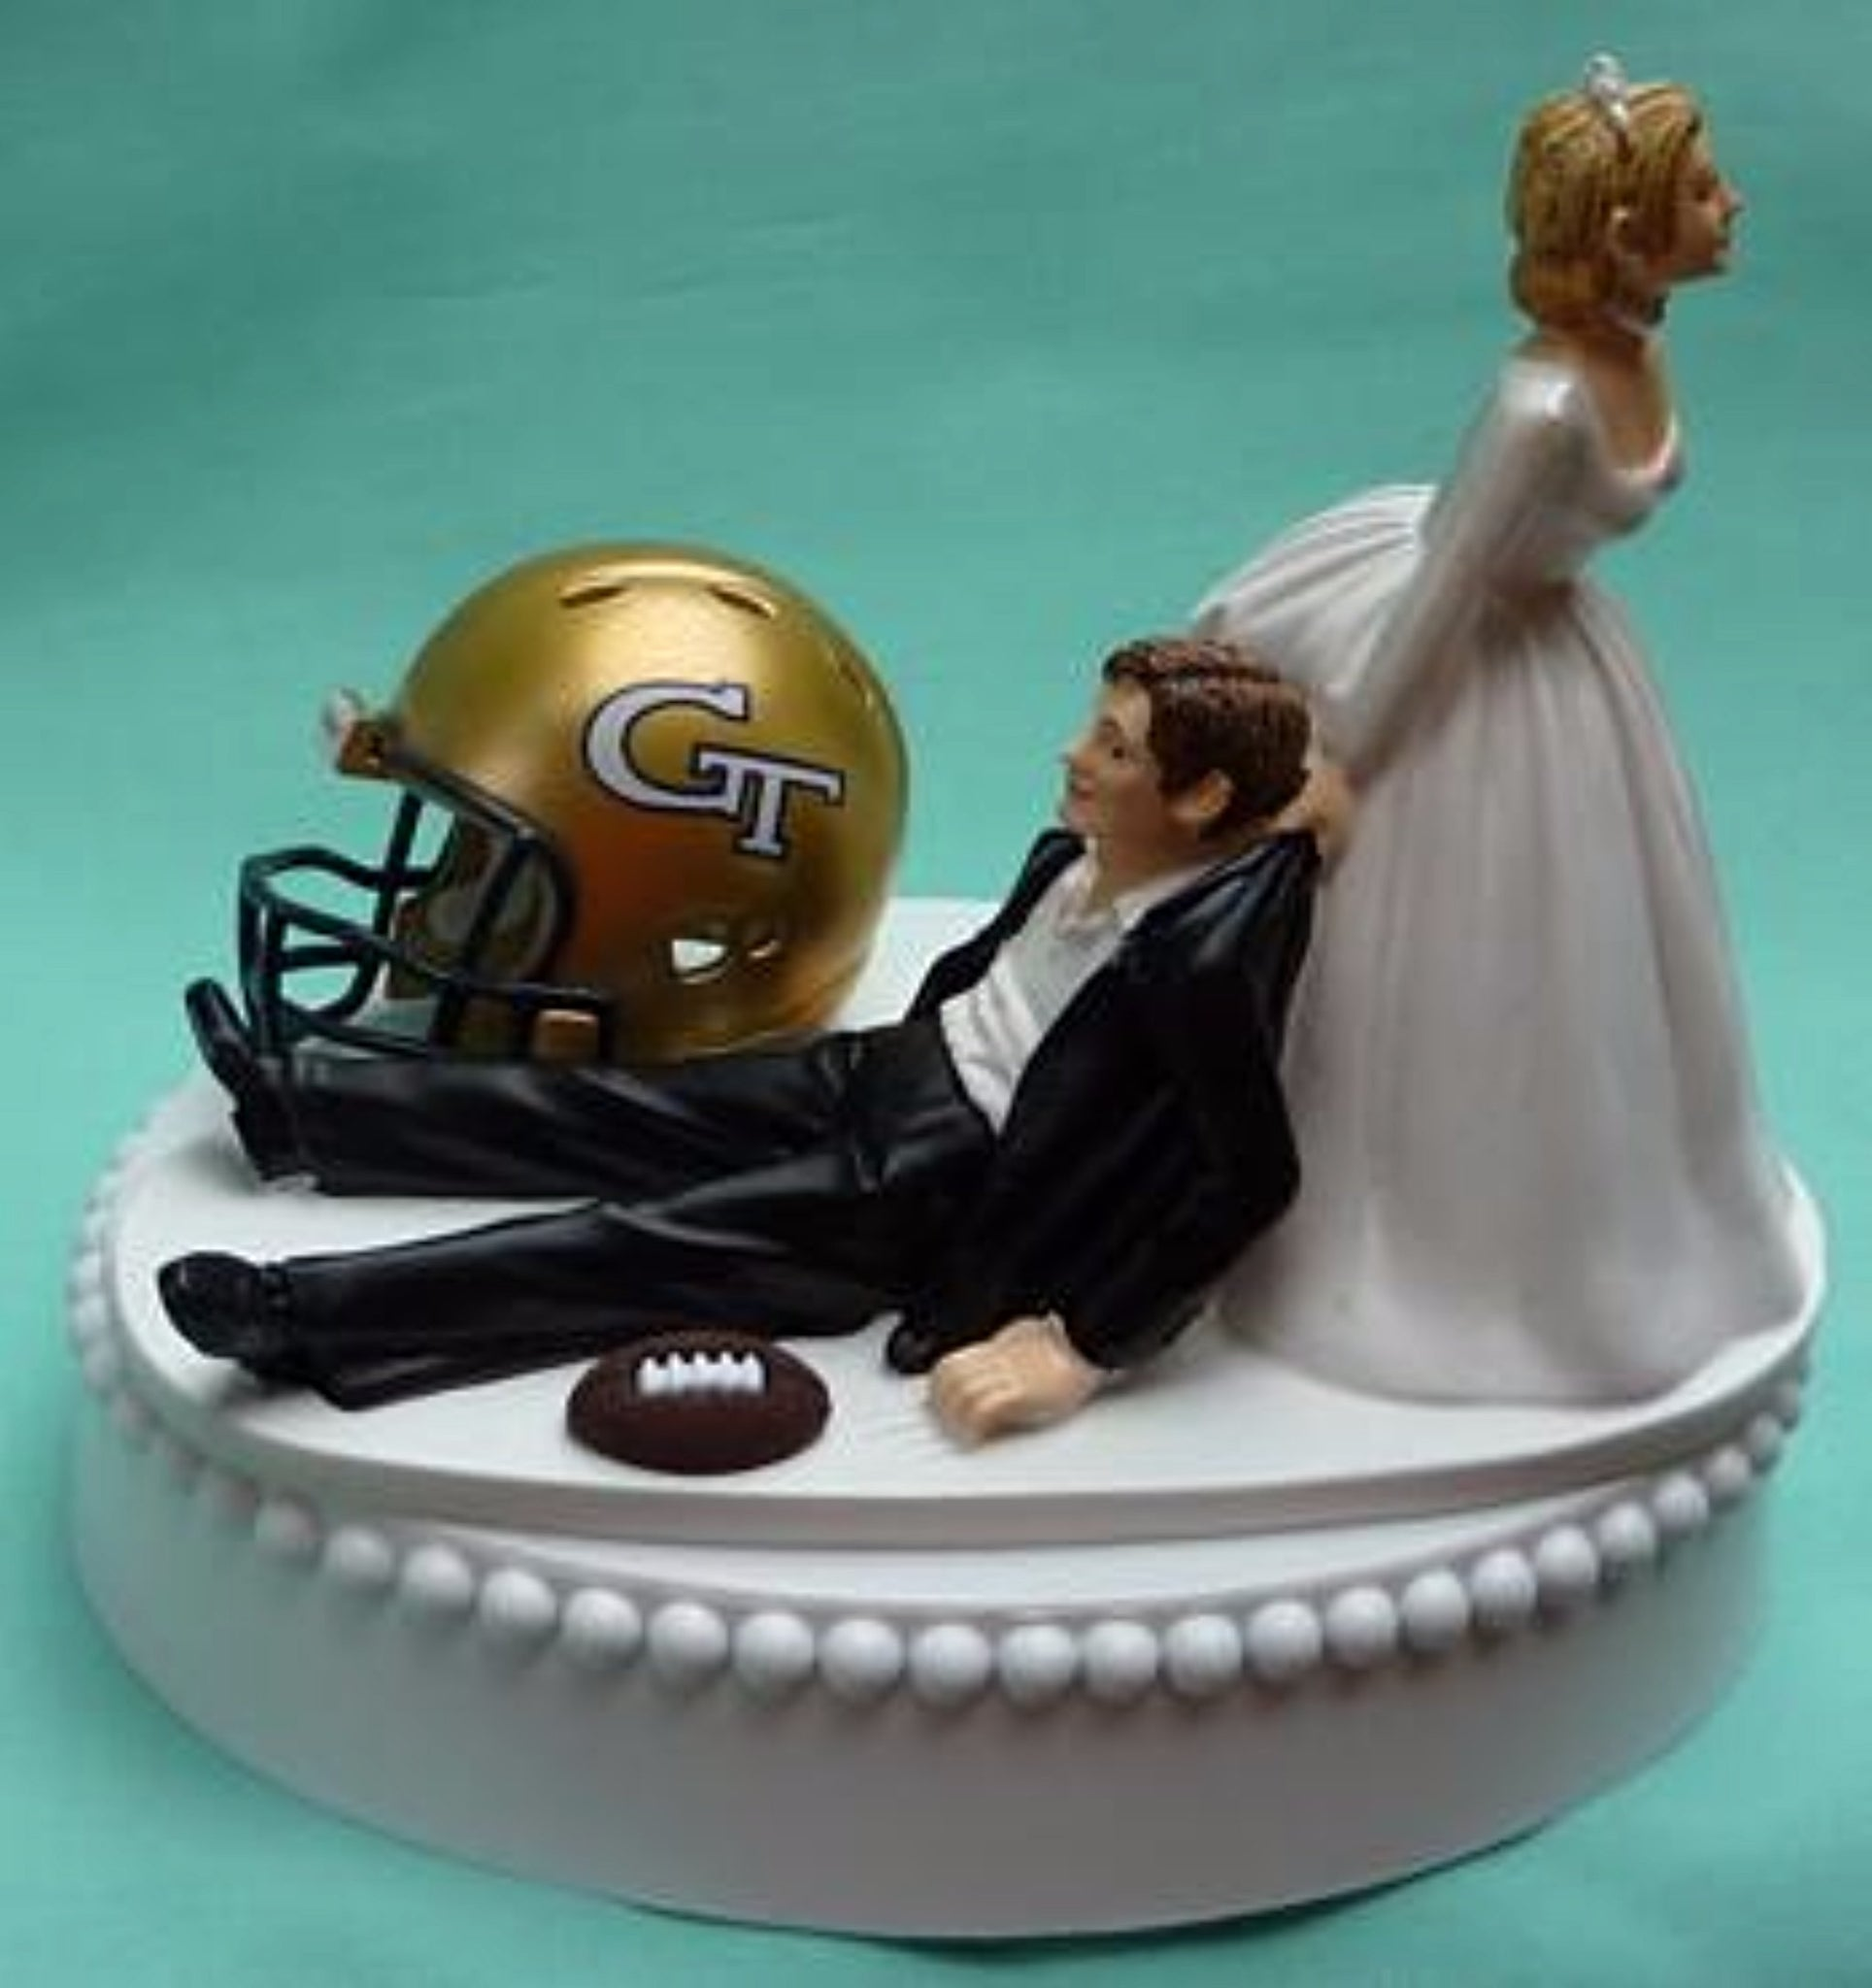 Georgia Tech wedding cake topper GT Yellow Jackets football themed sports fans funny bride drags groom humorous reception gift Fun Wedding Things sporty